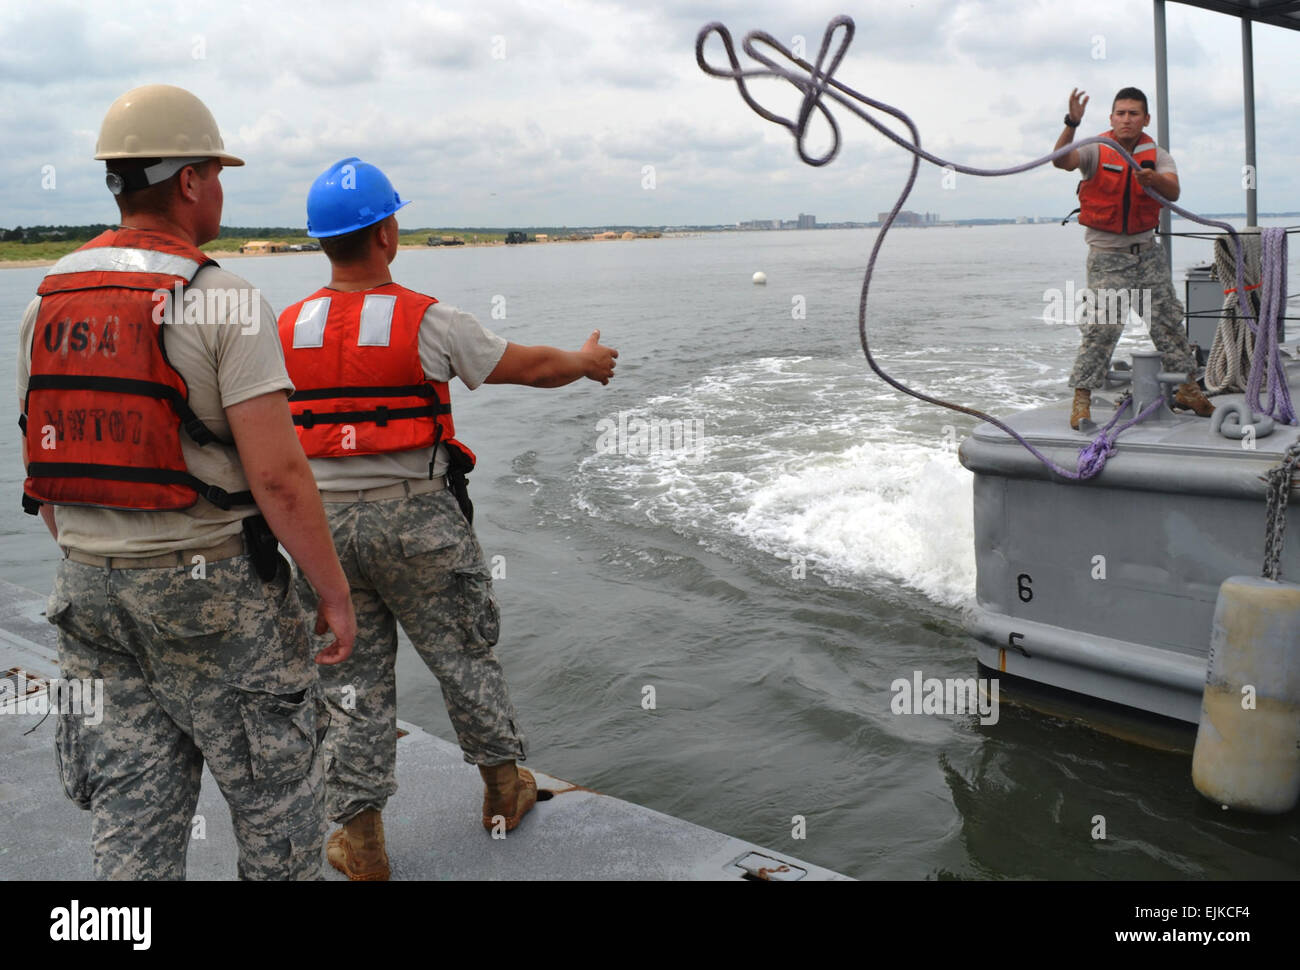 Pfc. Juan Guebara, right, a watercraft engineer assigned to the 7th Sustainment Brigade, tosses a line to two soldiers - Stock Image